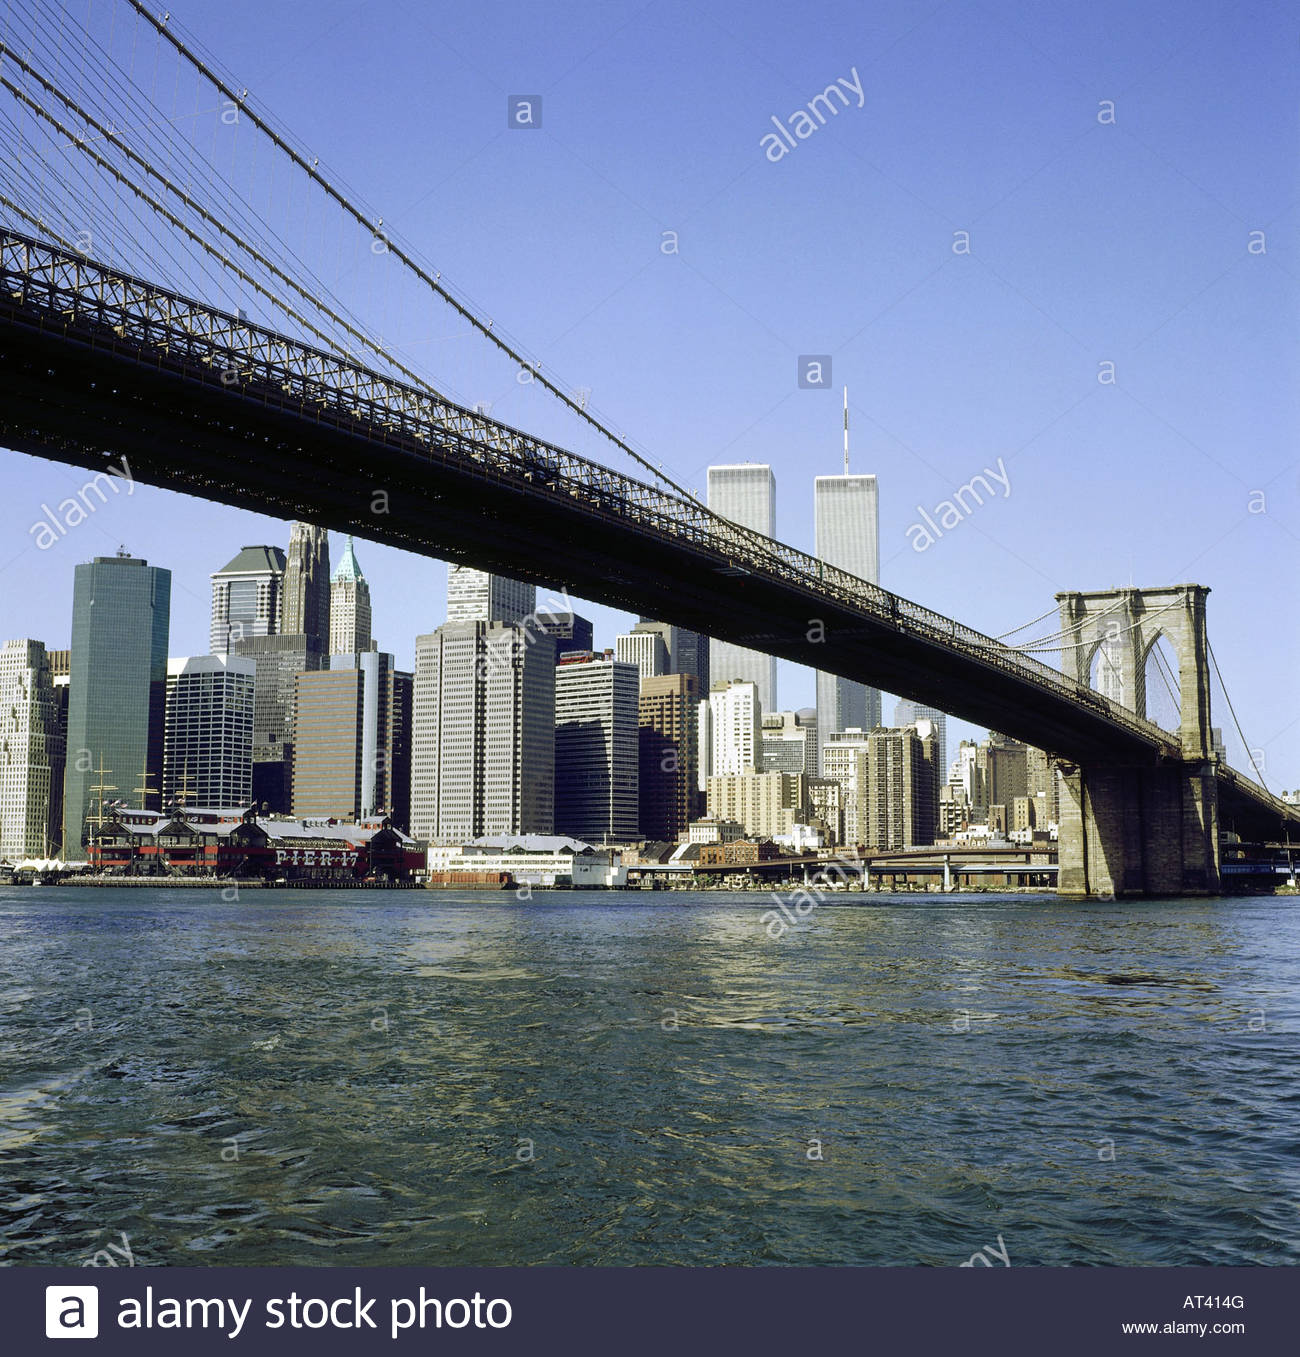 an introduction to the geography of new york city New york: geography and climate new york city tends to have its own micro-climate of warmer summers and winters than new york: introduction new.